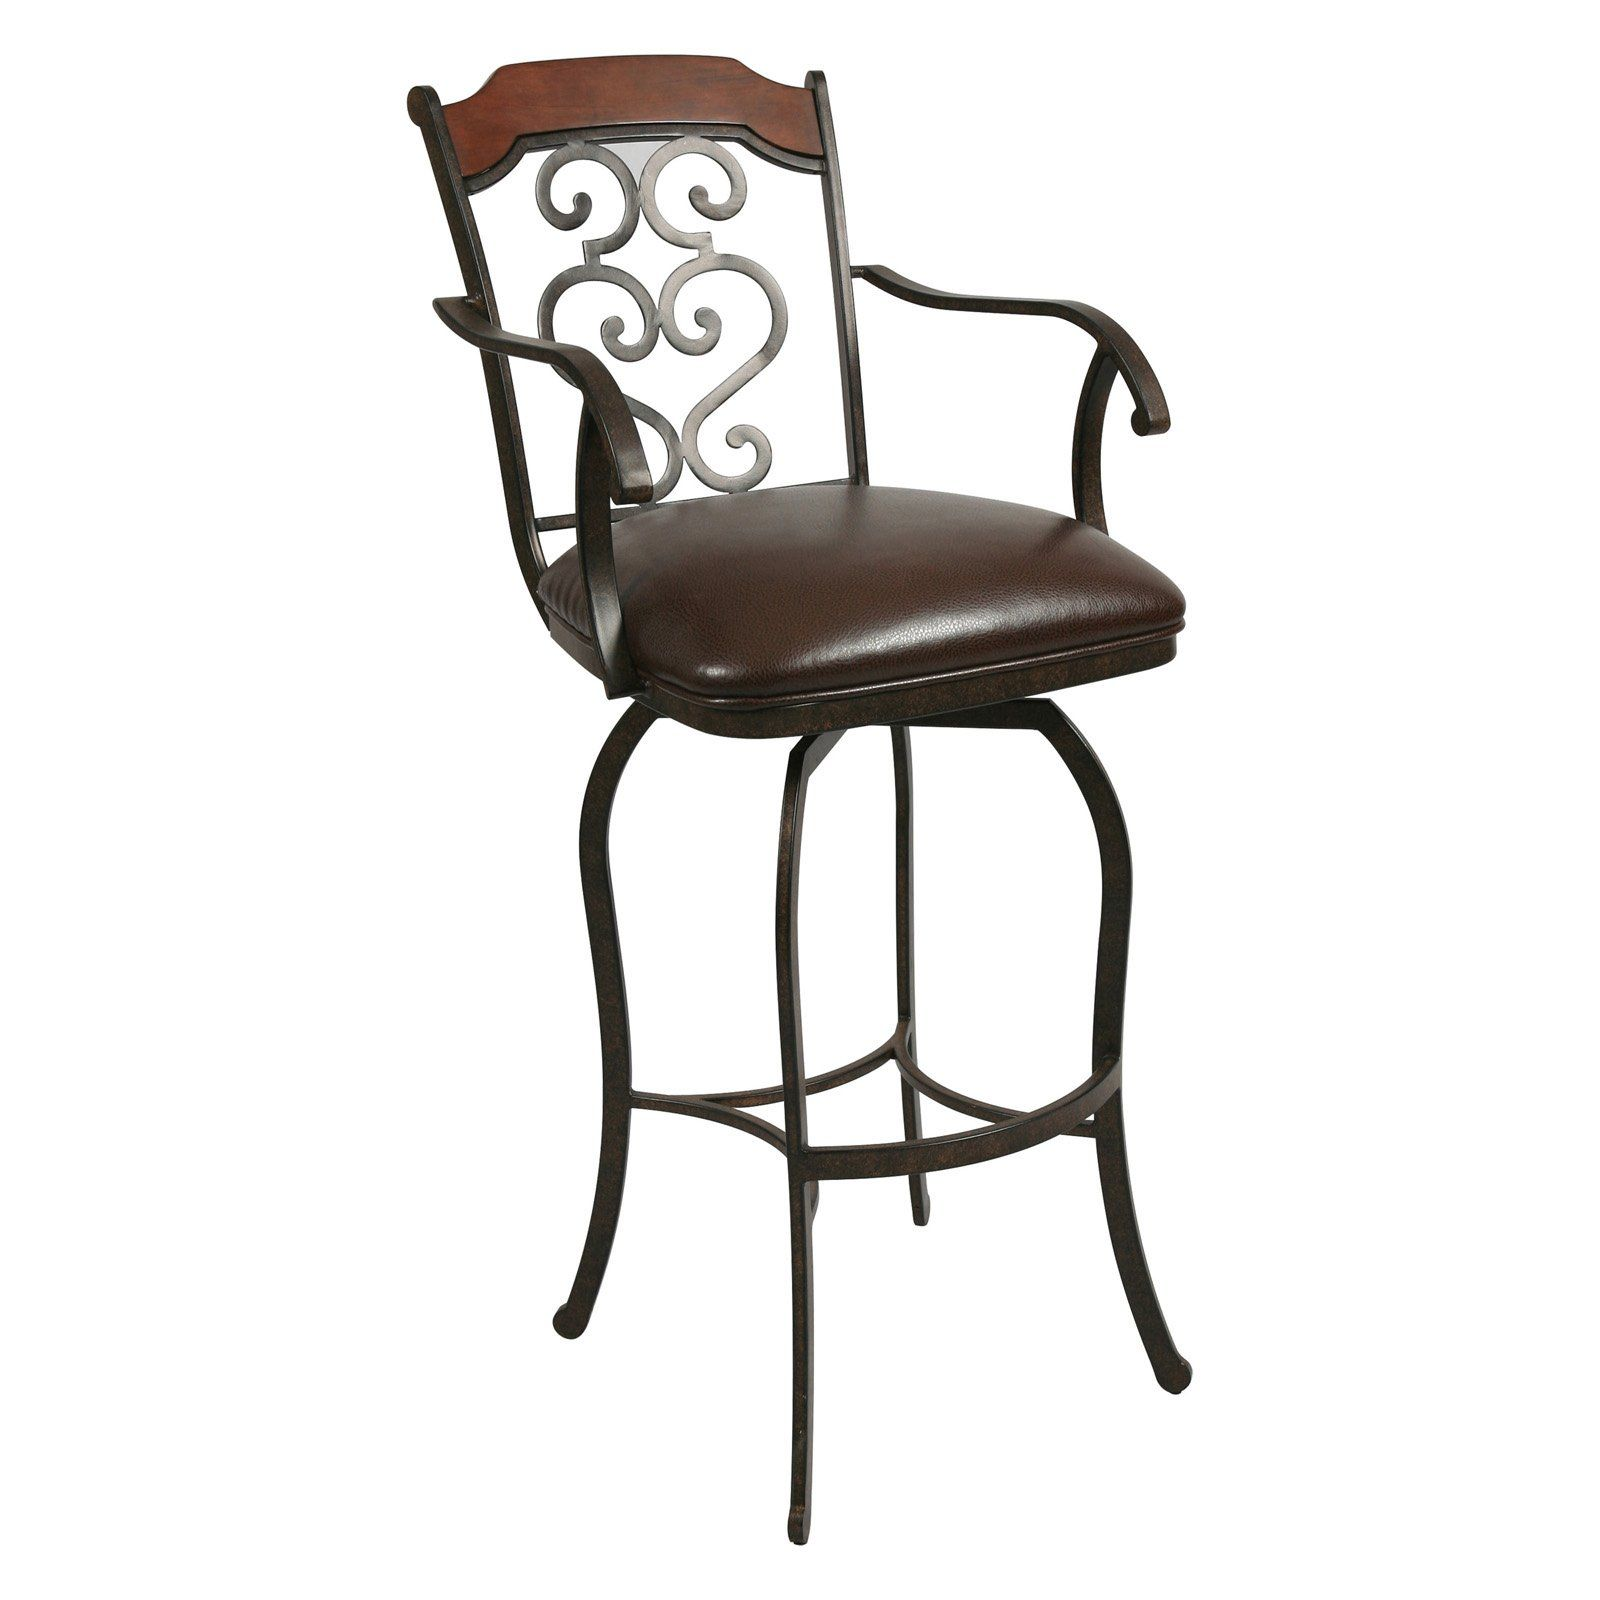 Pastel 30 In Jersey Meadow Swivel Bar Stool With Arms Autumn Rust Swivel Bar Stools Bar Height Stools Bar Stools